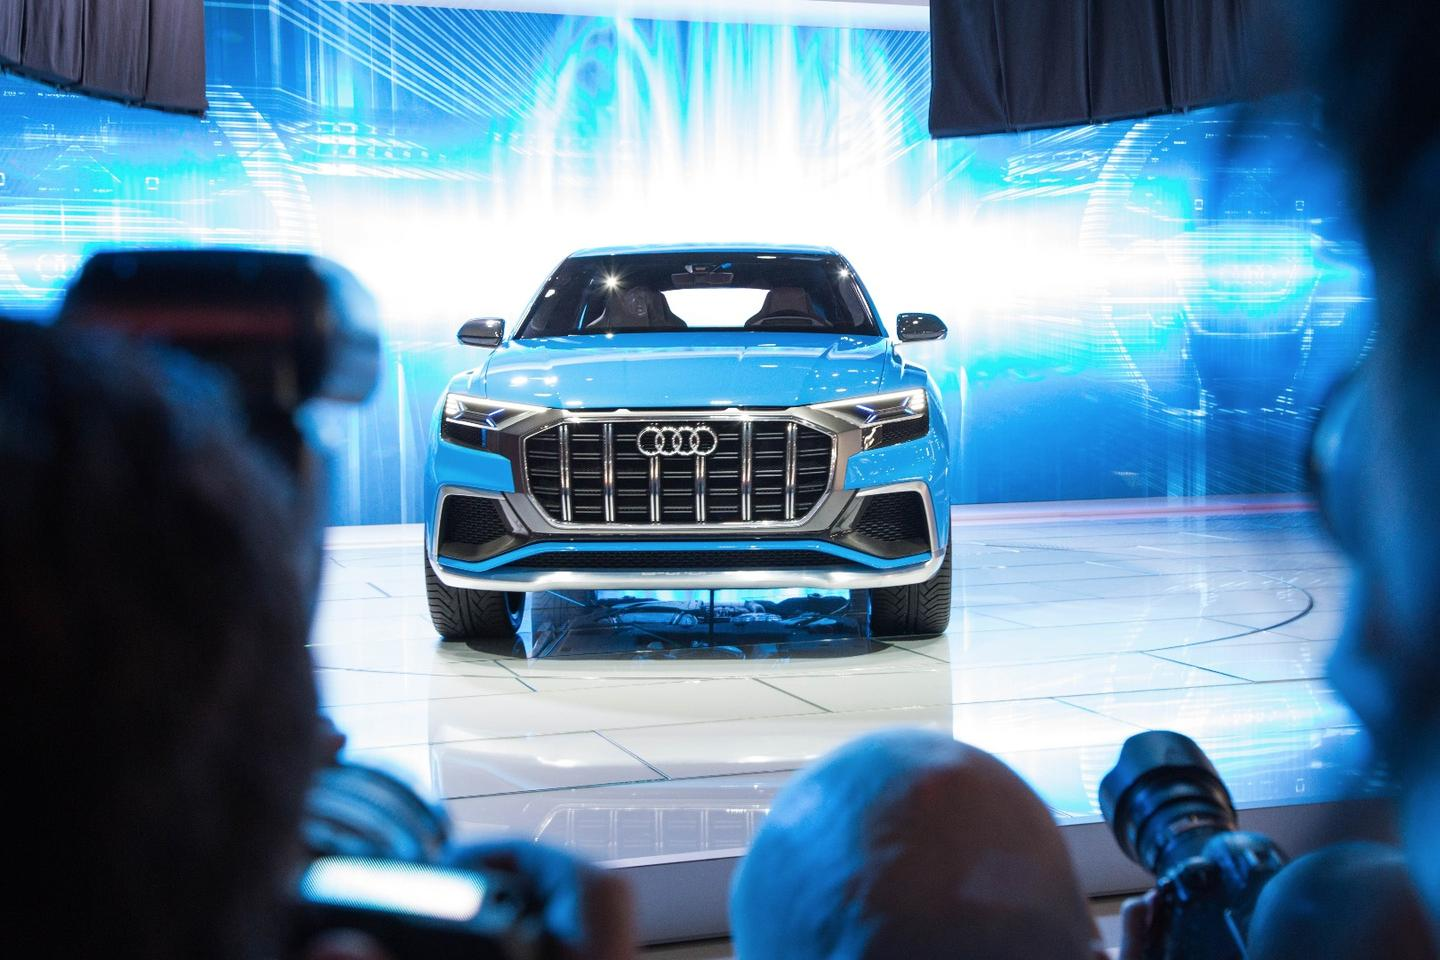 """The press is taken aback by the """"I will eat you"""" stance of the emerging Audi Q8 in its unveil during the Detroit Auto Show"""